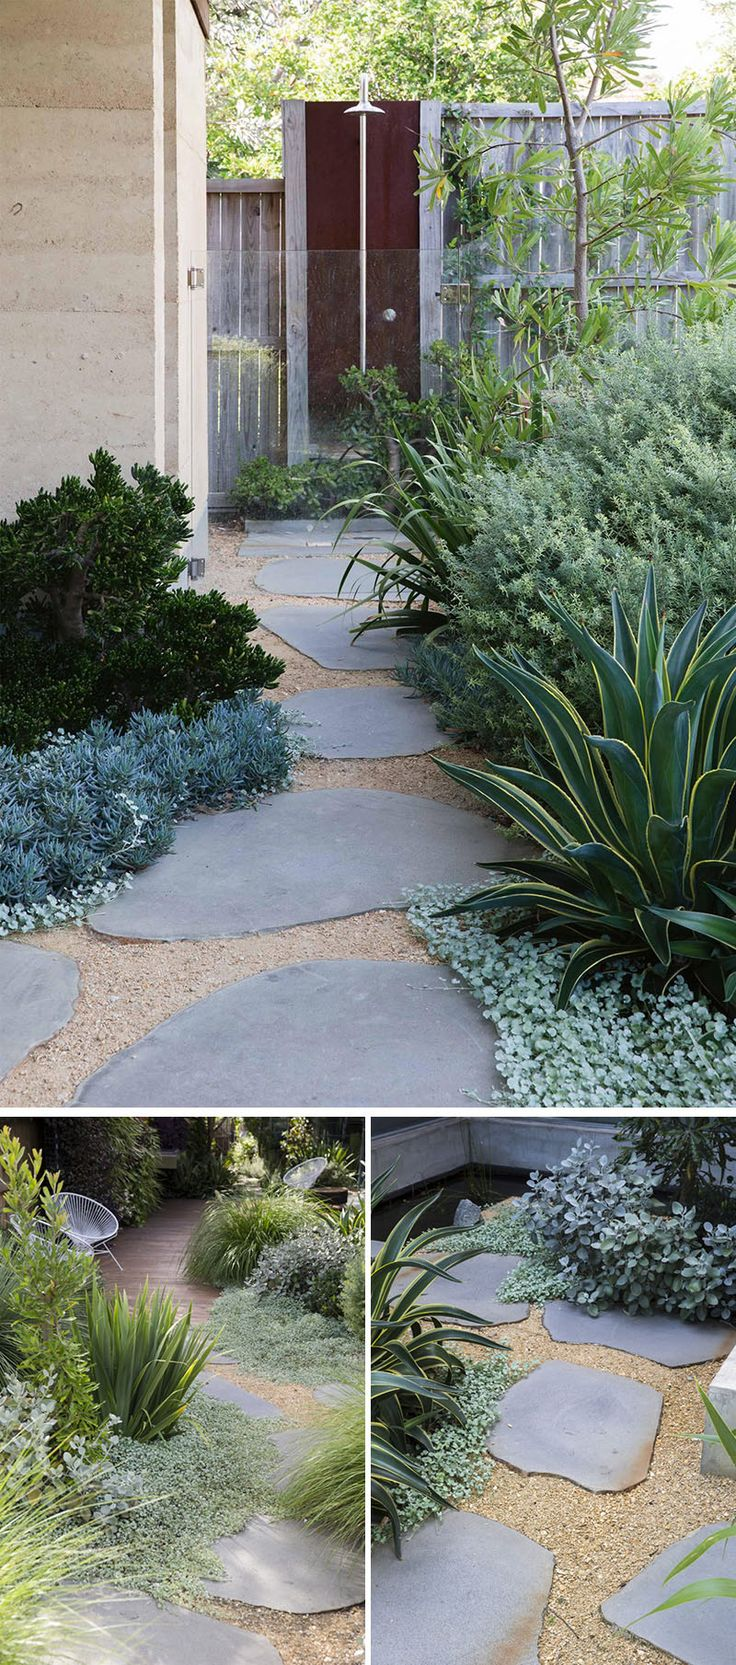 Jack merlo design more outdoor garden ideas landscape design gardening 10 landscaping ideas for using download